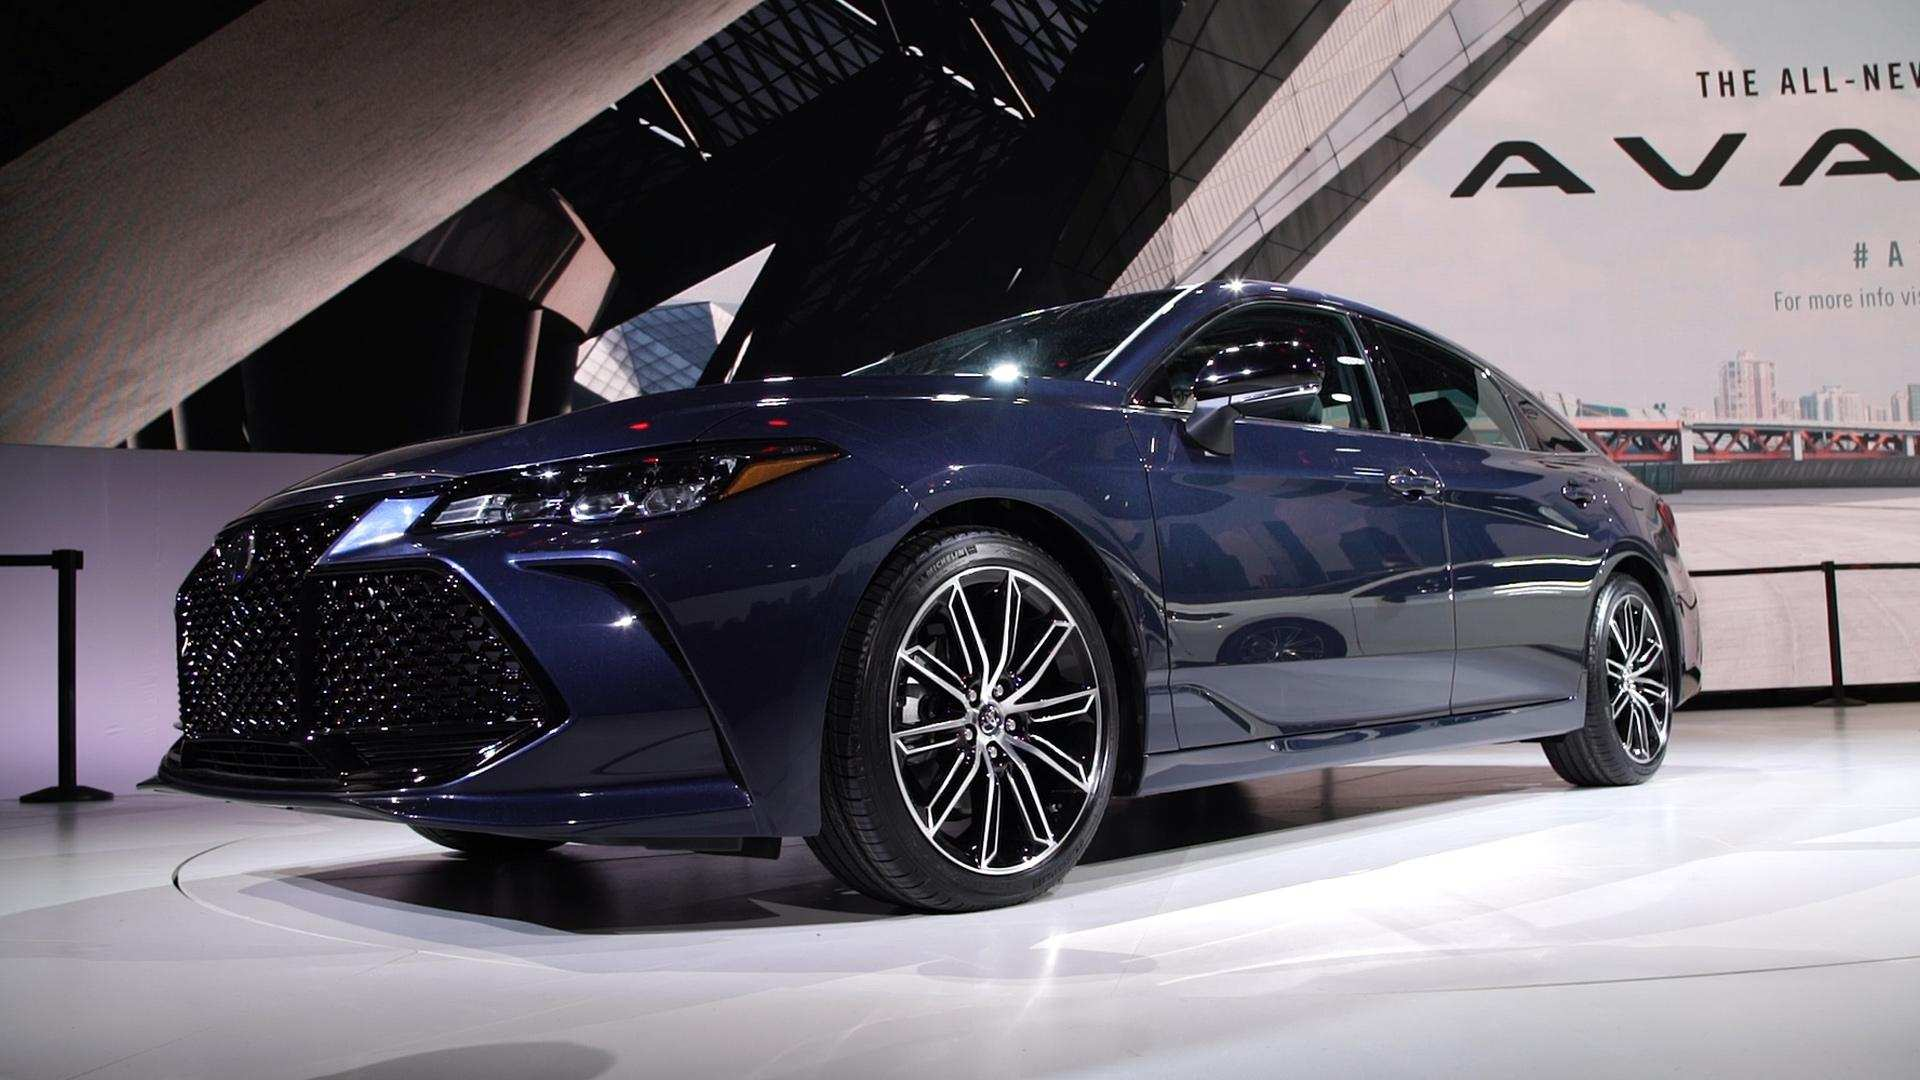 42 New 2019 Toyota Avalon Xse Release Date with 2019 Toyota Avalon Xse